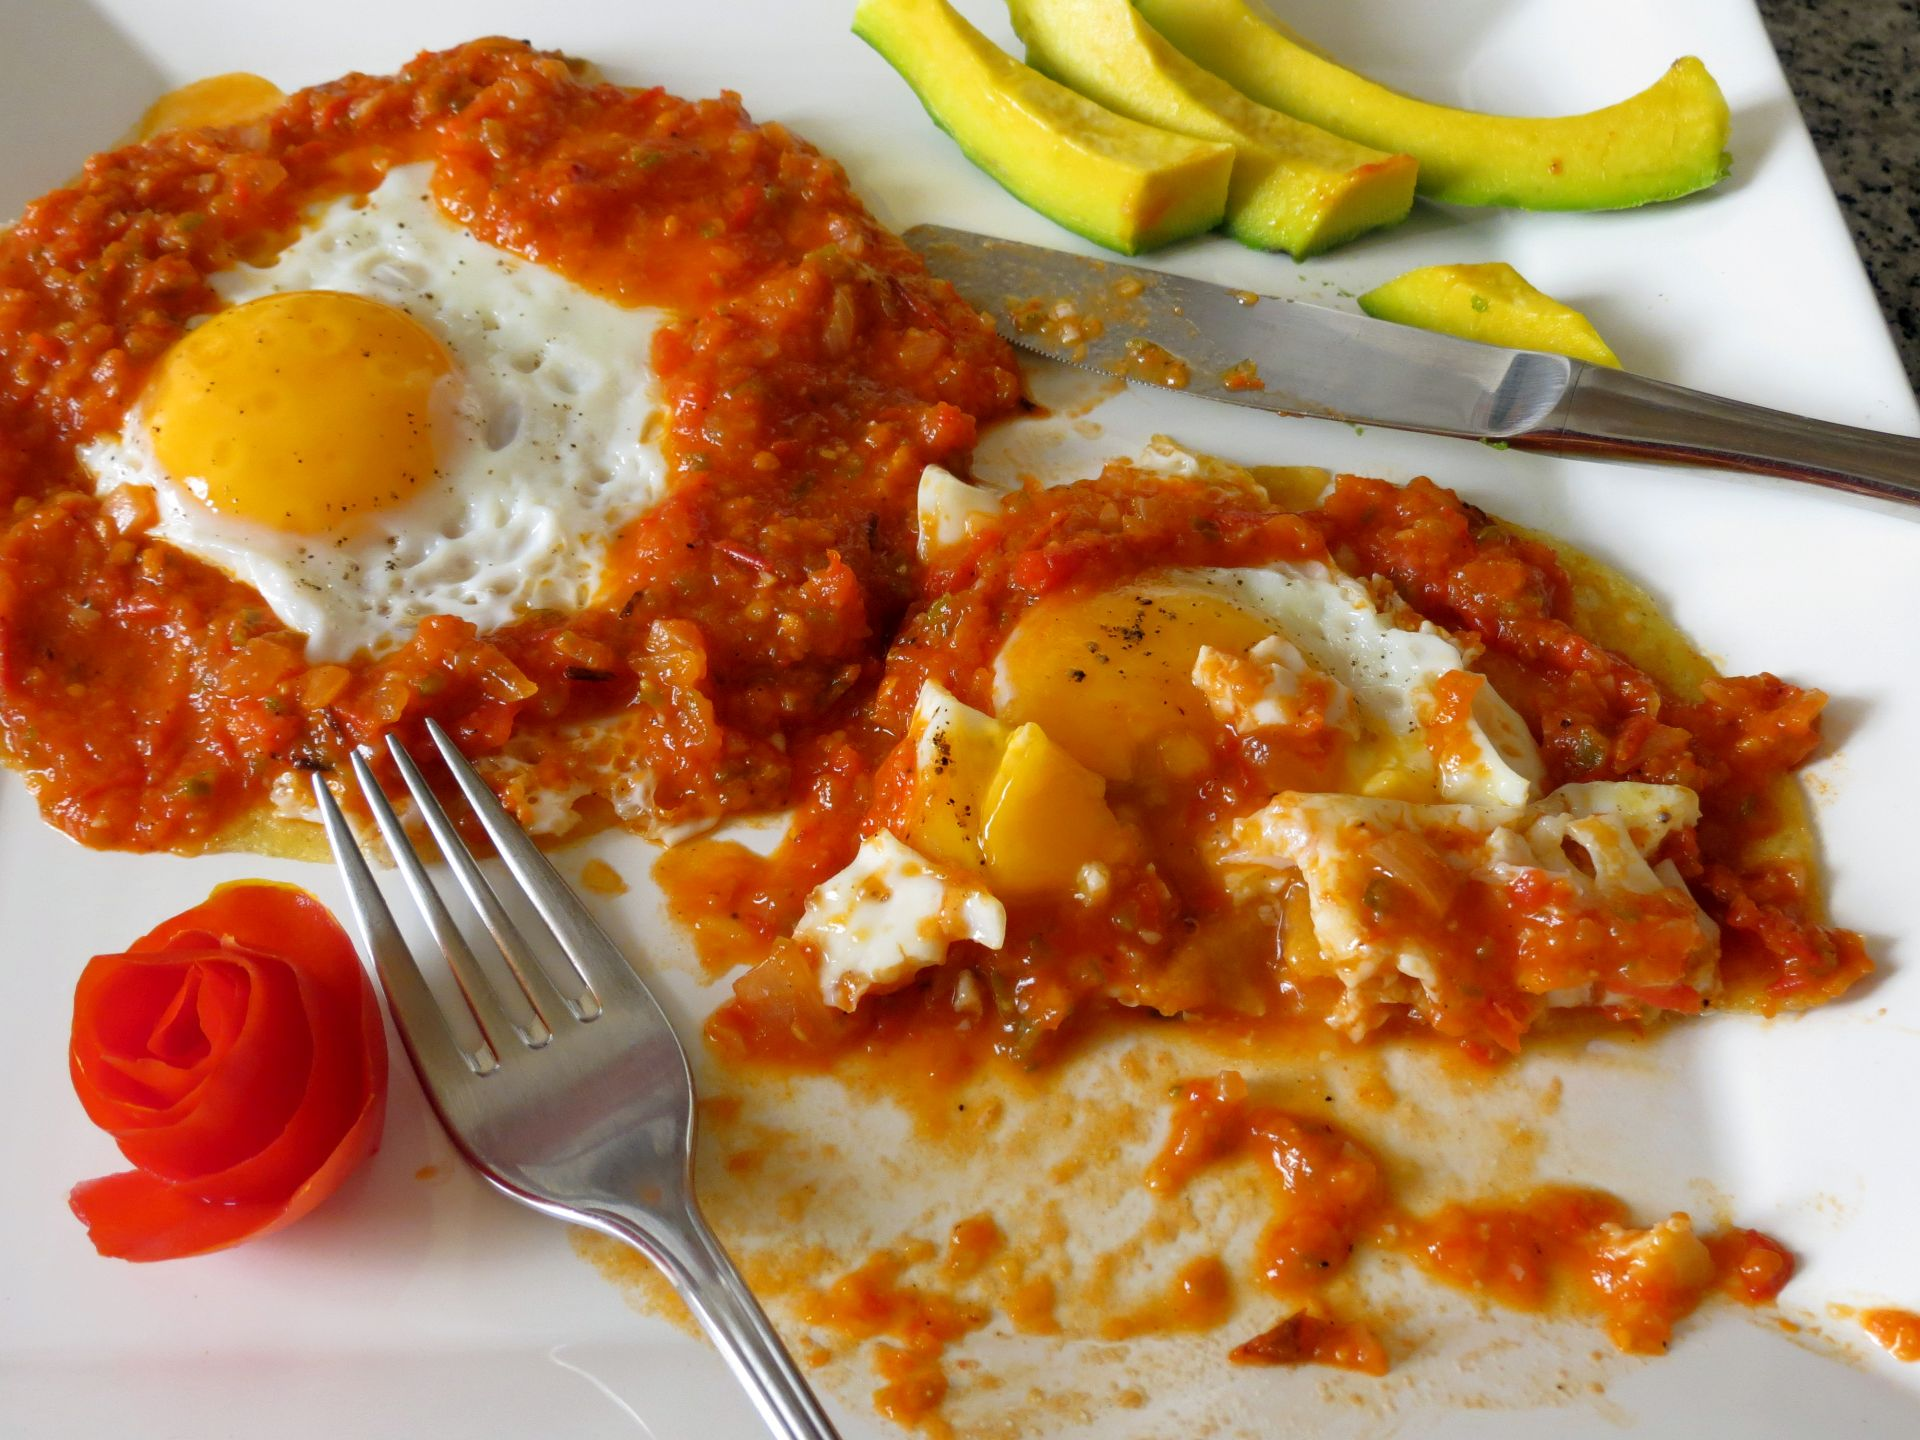 Huevos Rancheros Recipe - The Frugal Chef